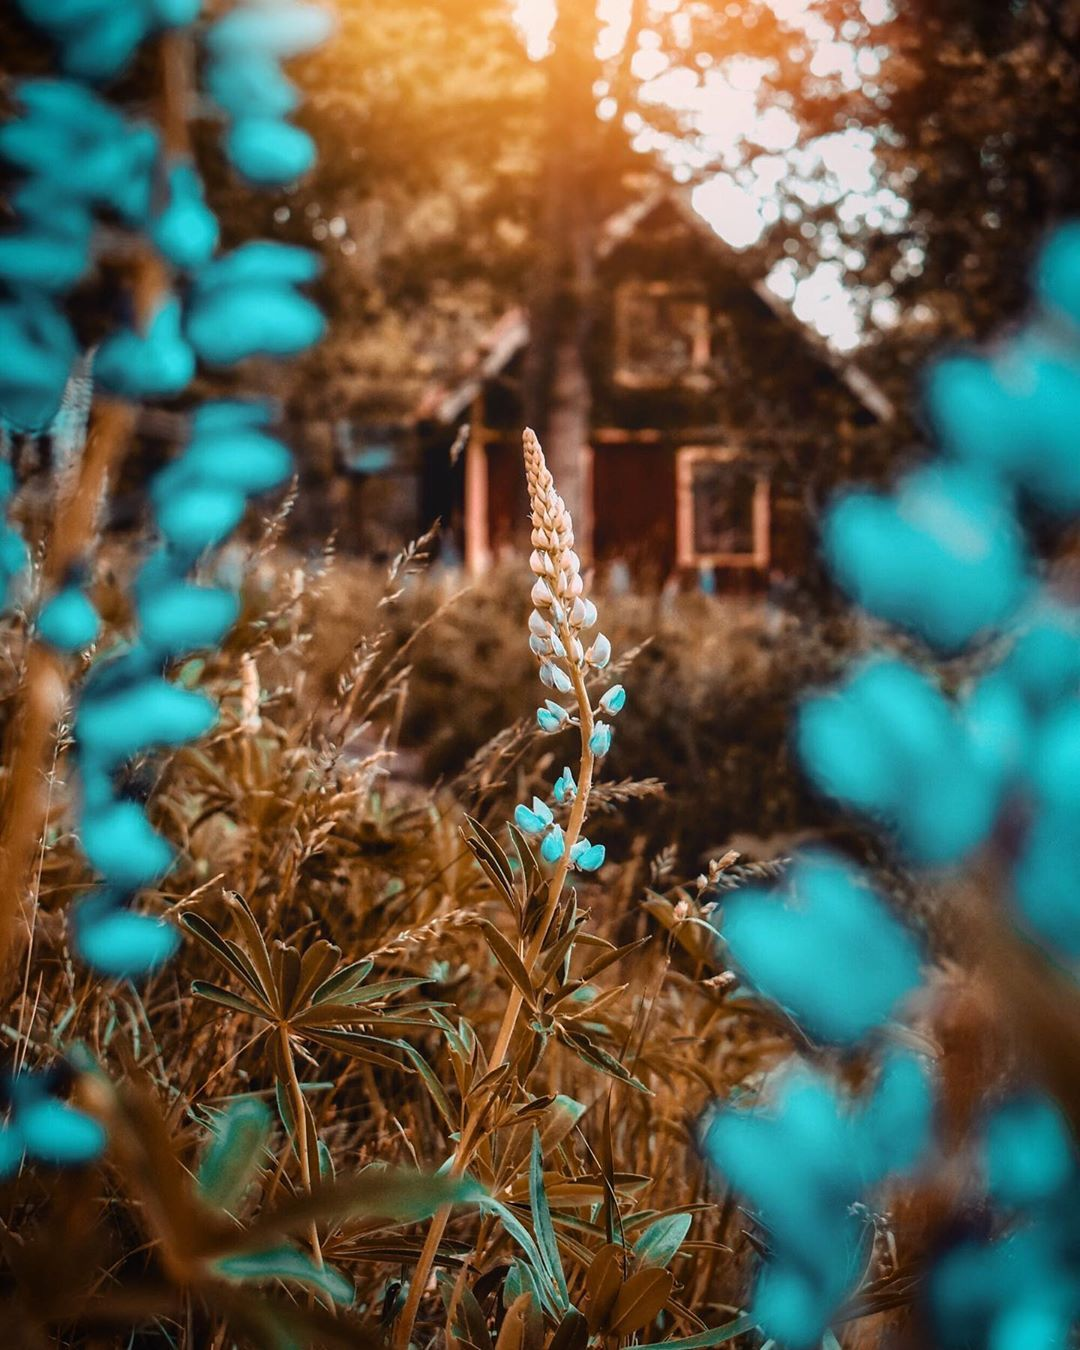 3 591 Likes 153 Comments Starrush On Instagram Alone House In The Background Wallpaper For Photoshop Light Background Images Blur Background Photography